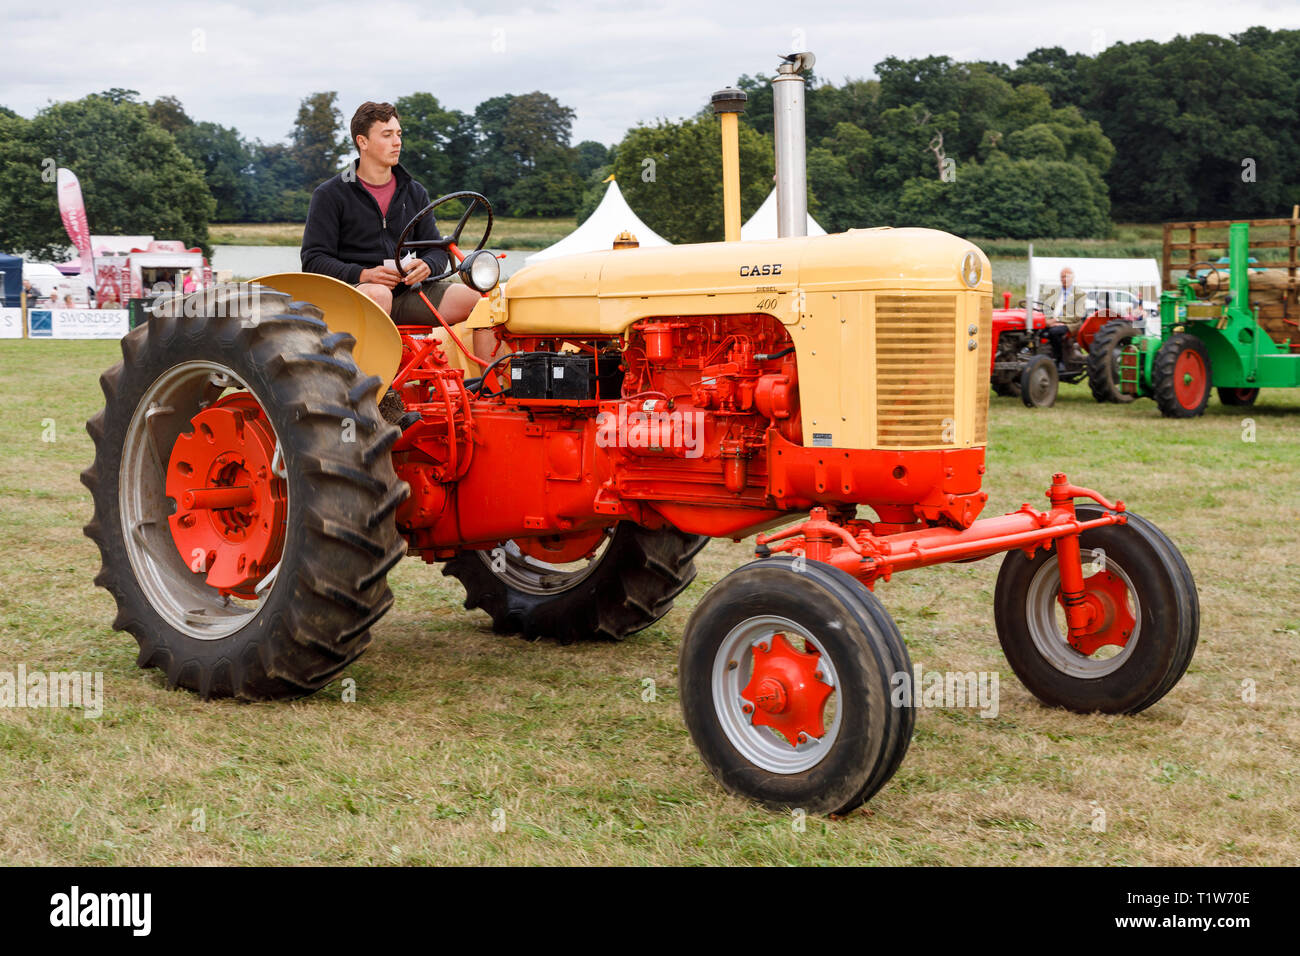 1950's Case Diesel 400 tractor at the 2018 Aylsham Agricultural Show, Norfolk, UK. - Stock Image